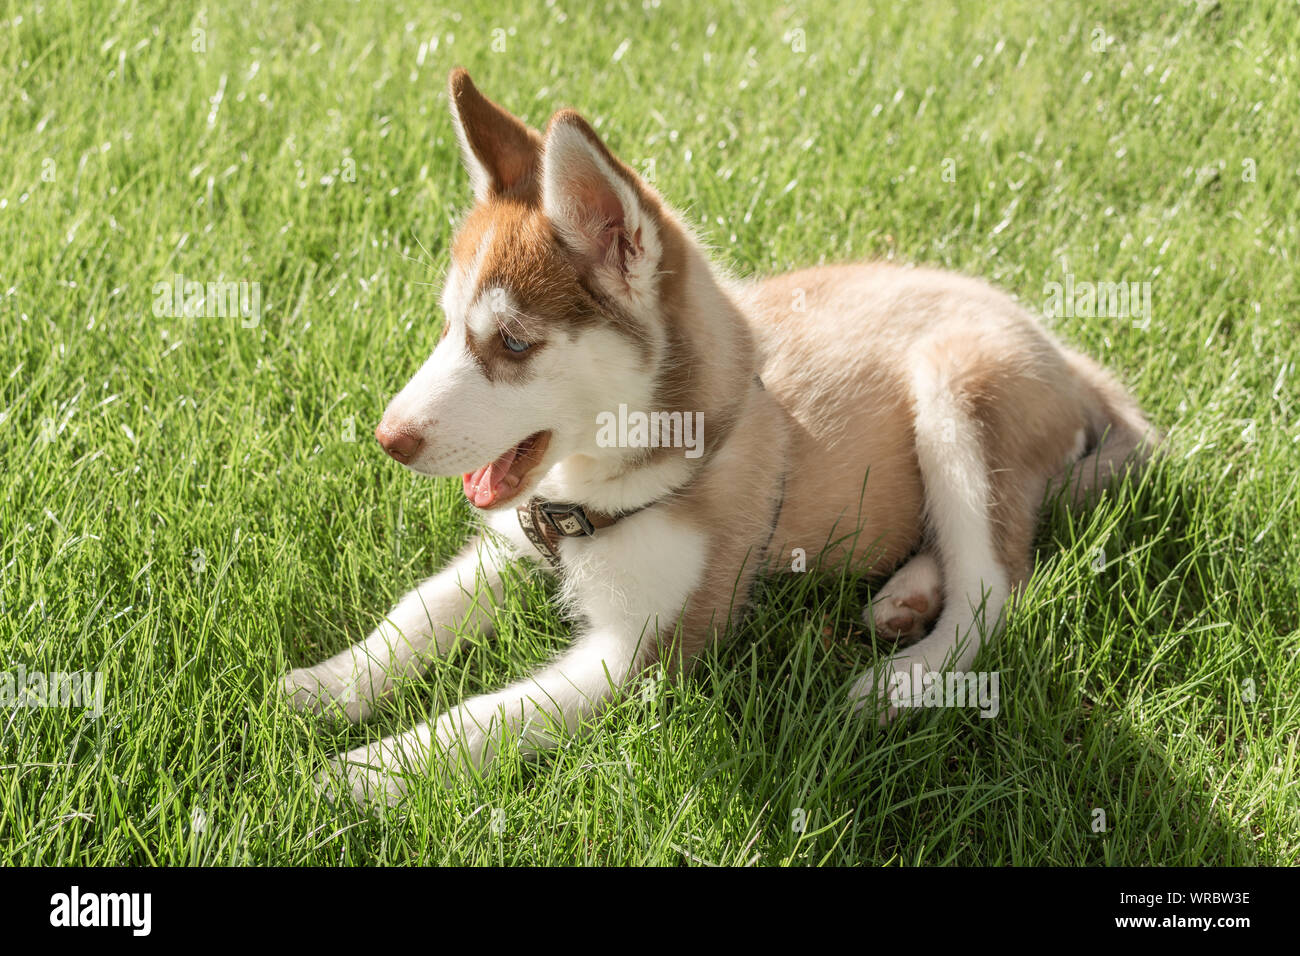 Husky Puppy Playing In A Green Grass Outdoor Siberian Beautiful White And Brown Dog Stock Photo Alamy